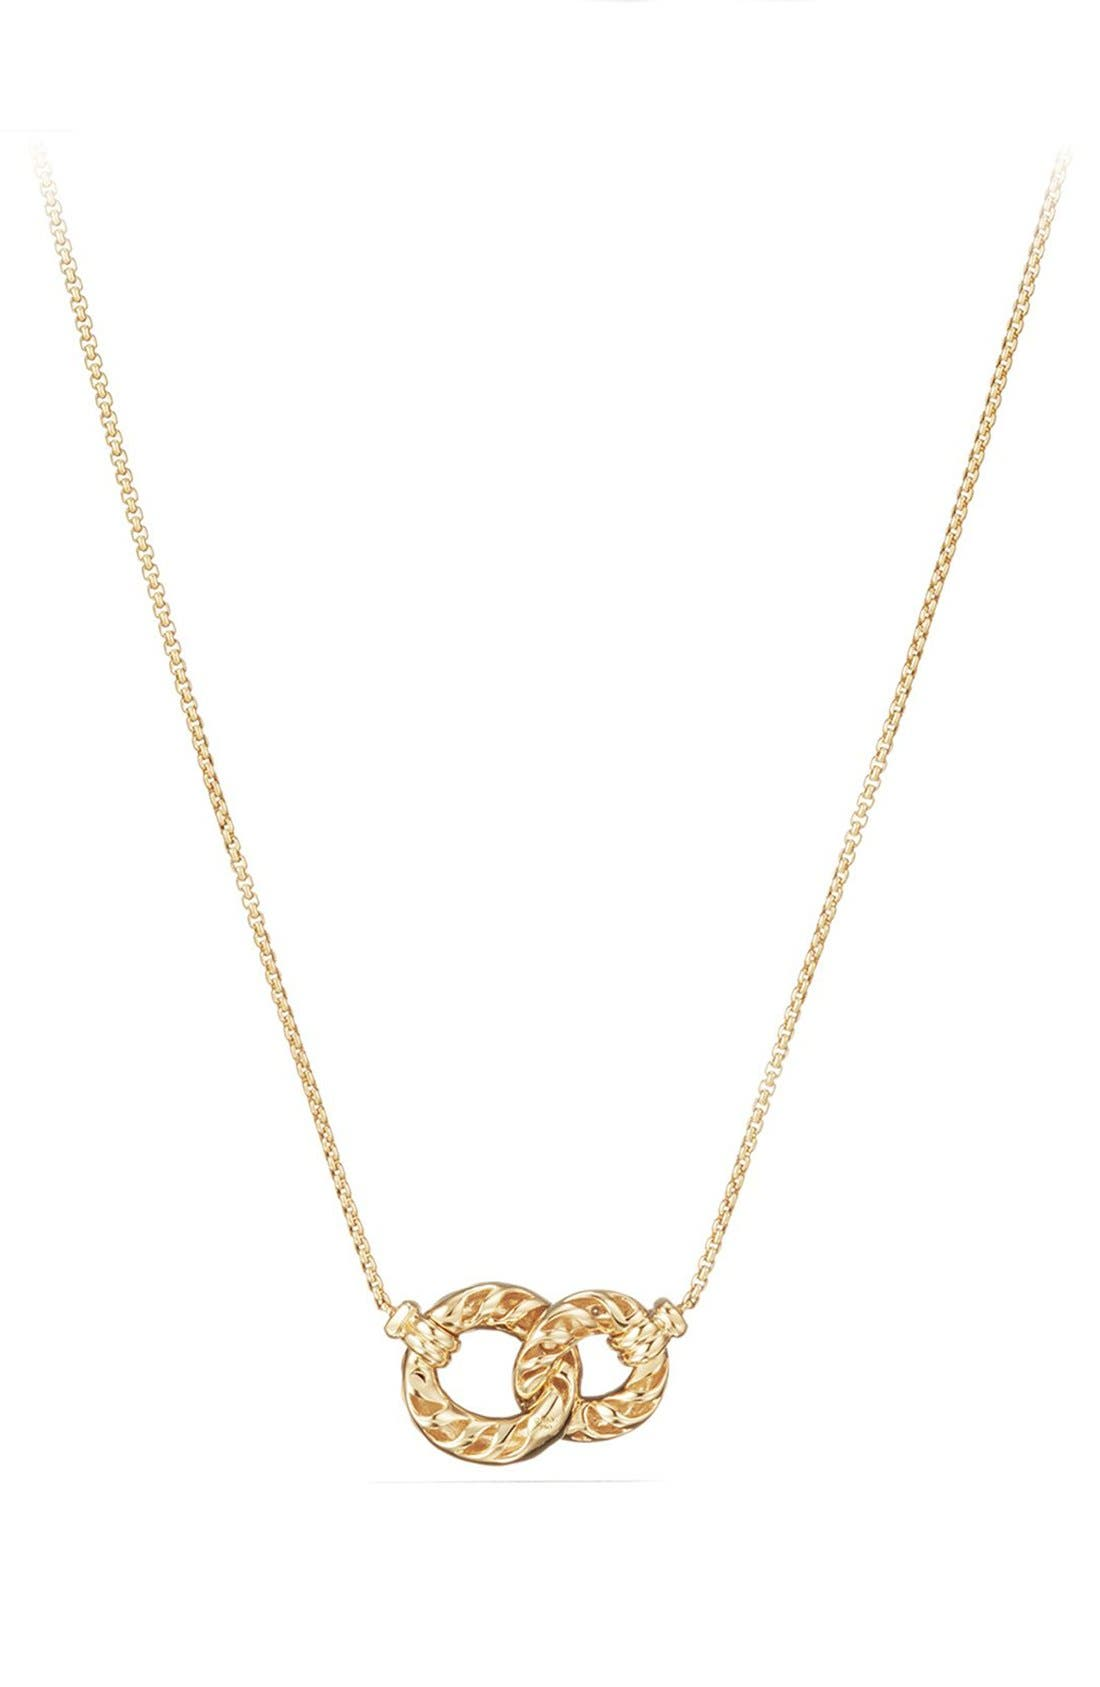 Main Image - David Yurman Belmont Extra-Small Double Curb Link Necklace with Diamonds in 18K Gold